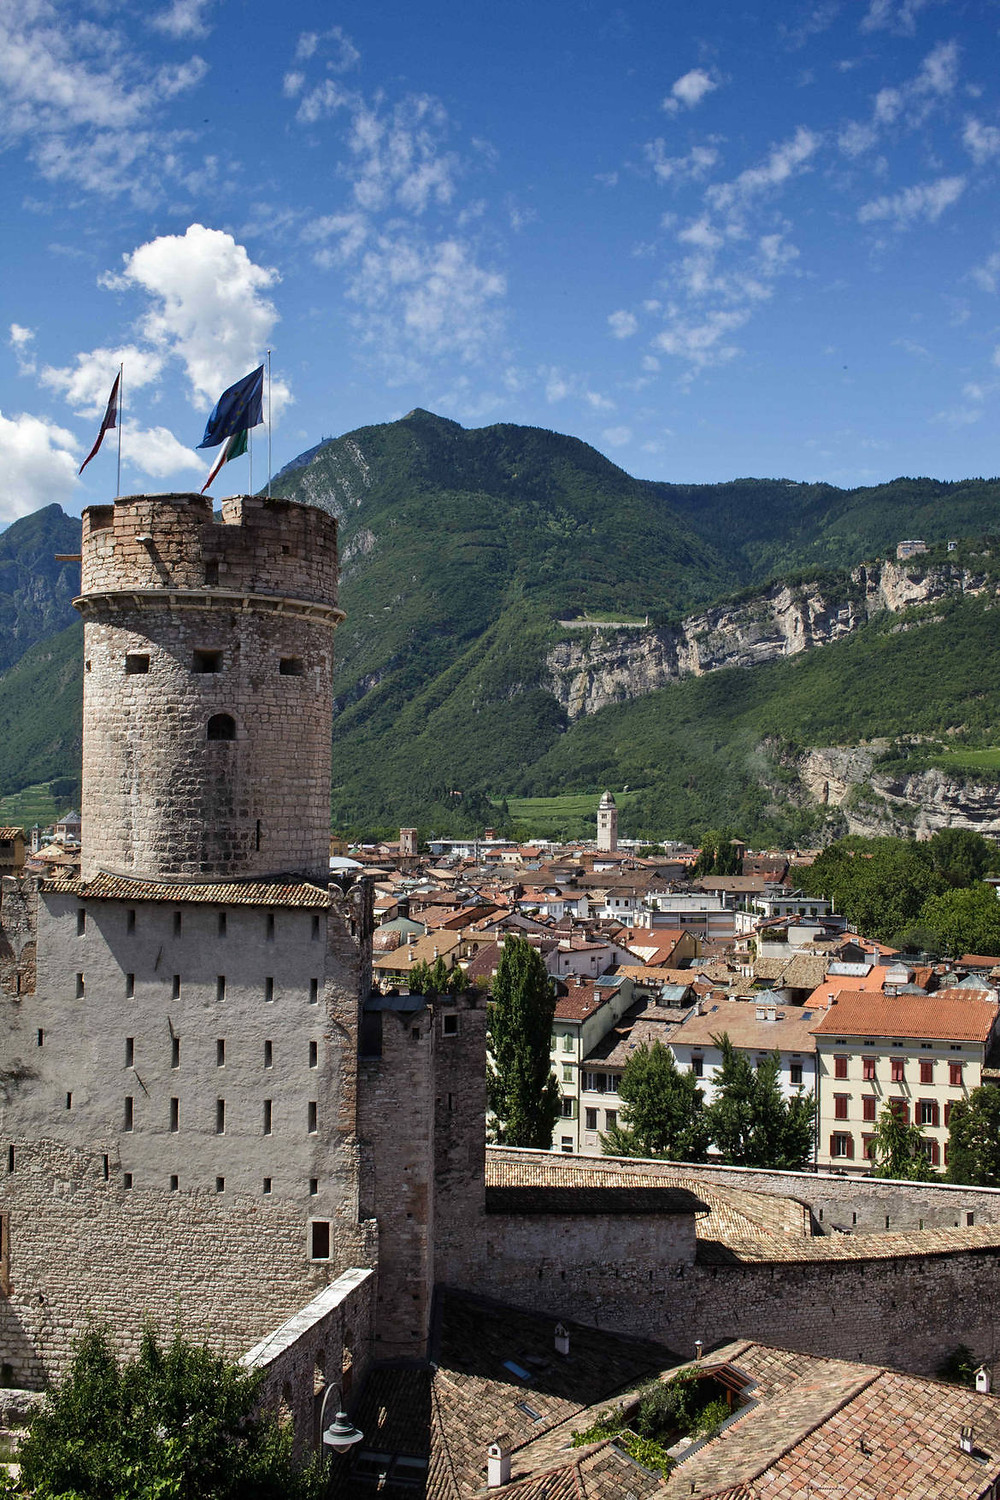 Trento Old Town, Castle Tower in front of old buildings and hills covered by forest